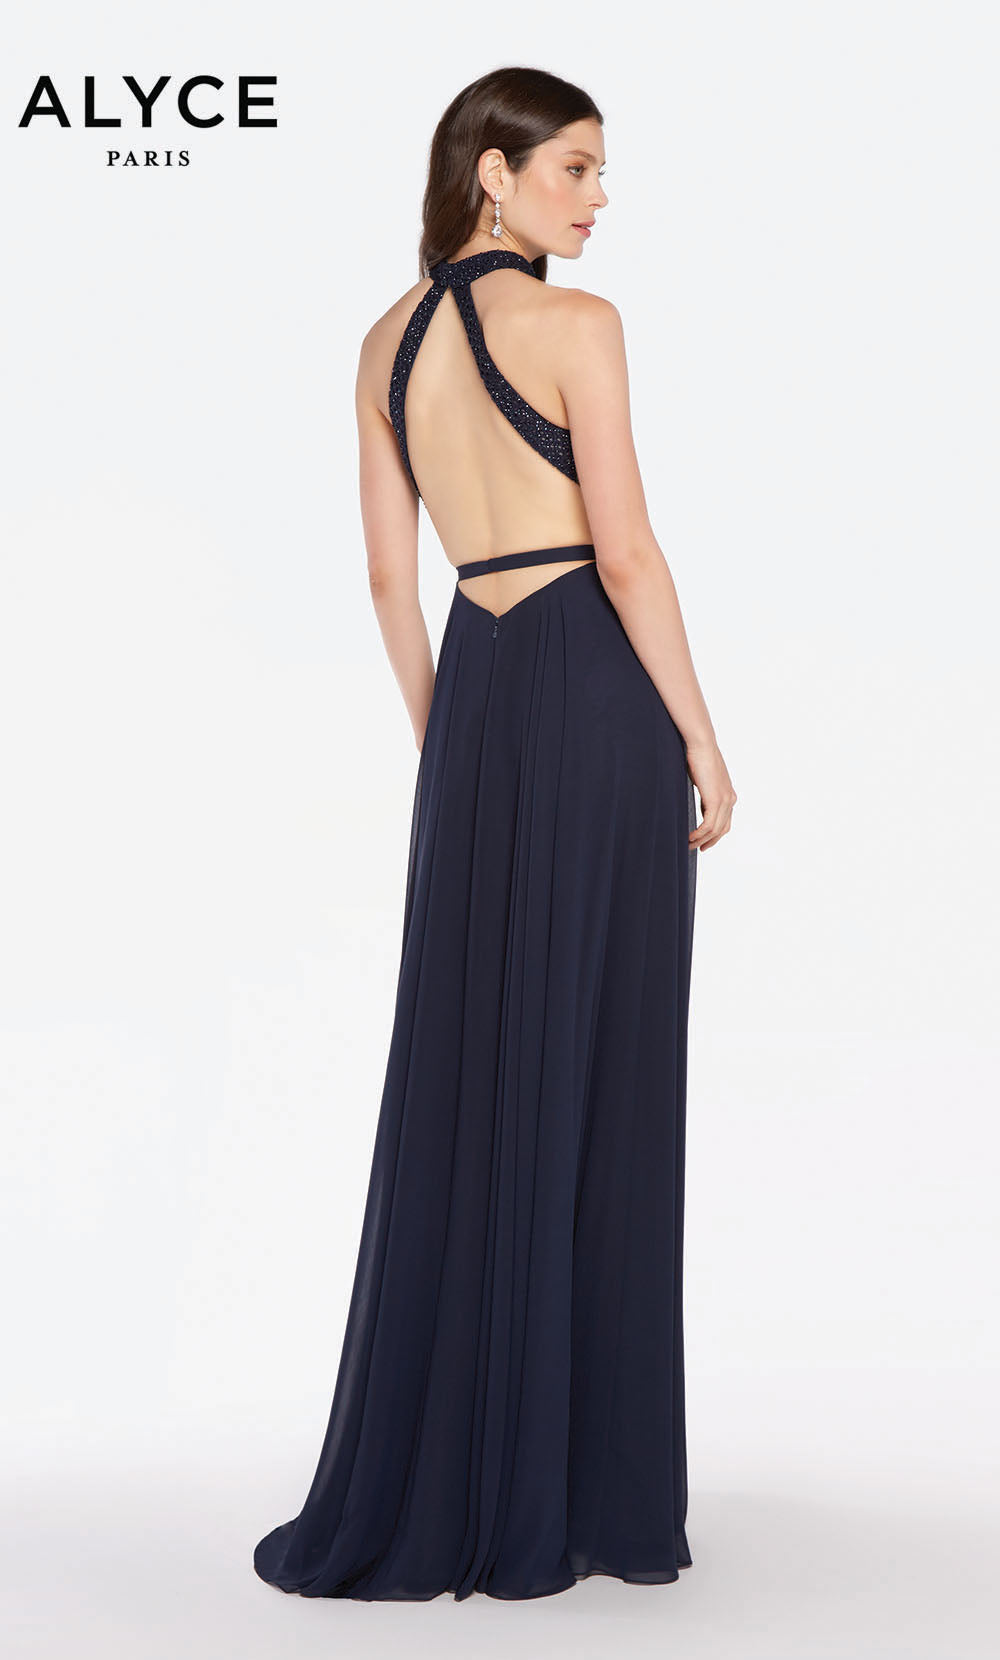 Alyce 60160 long flowy gown with a strappy open back